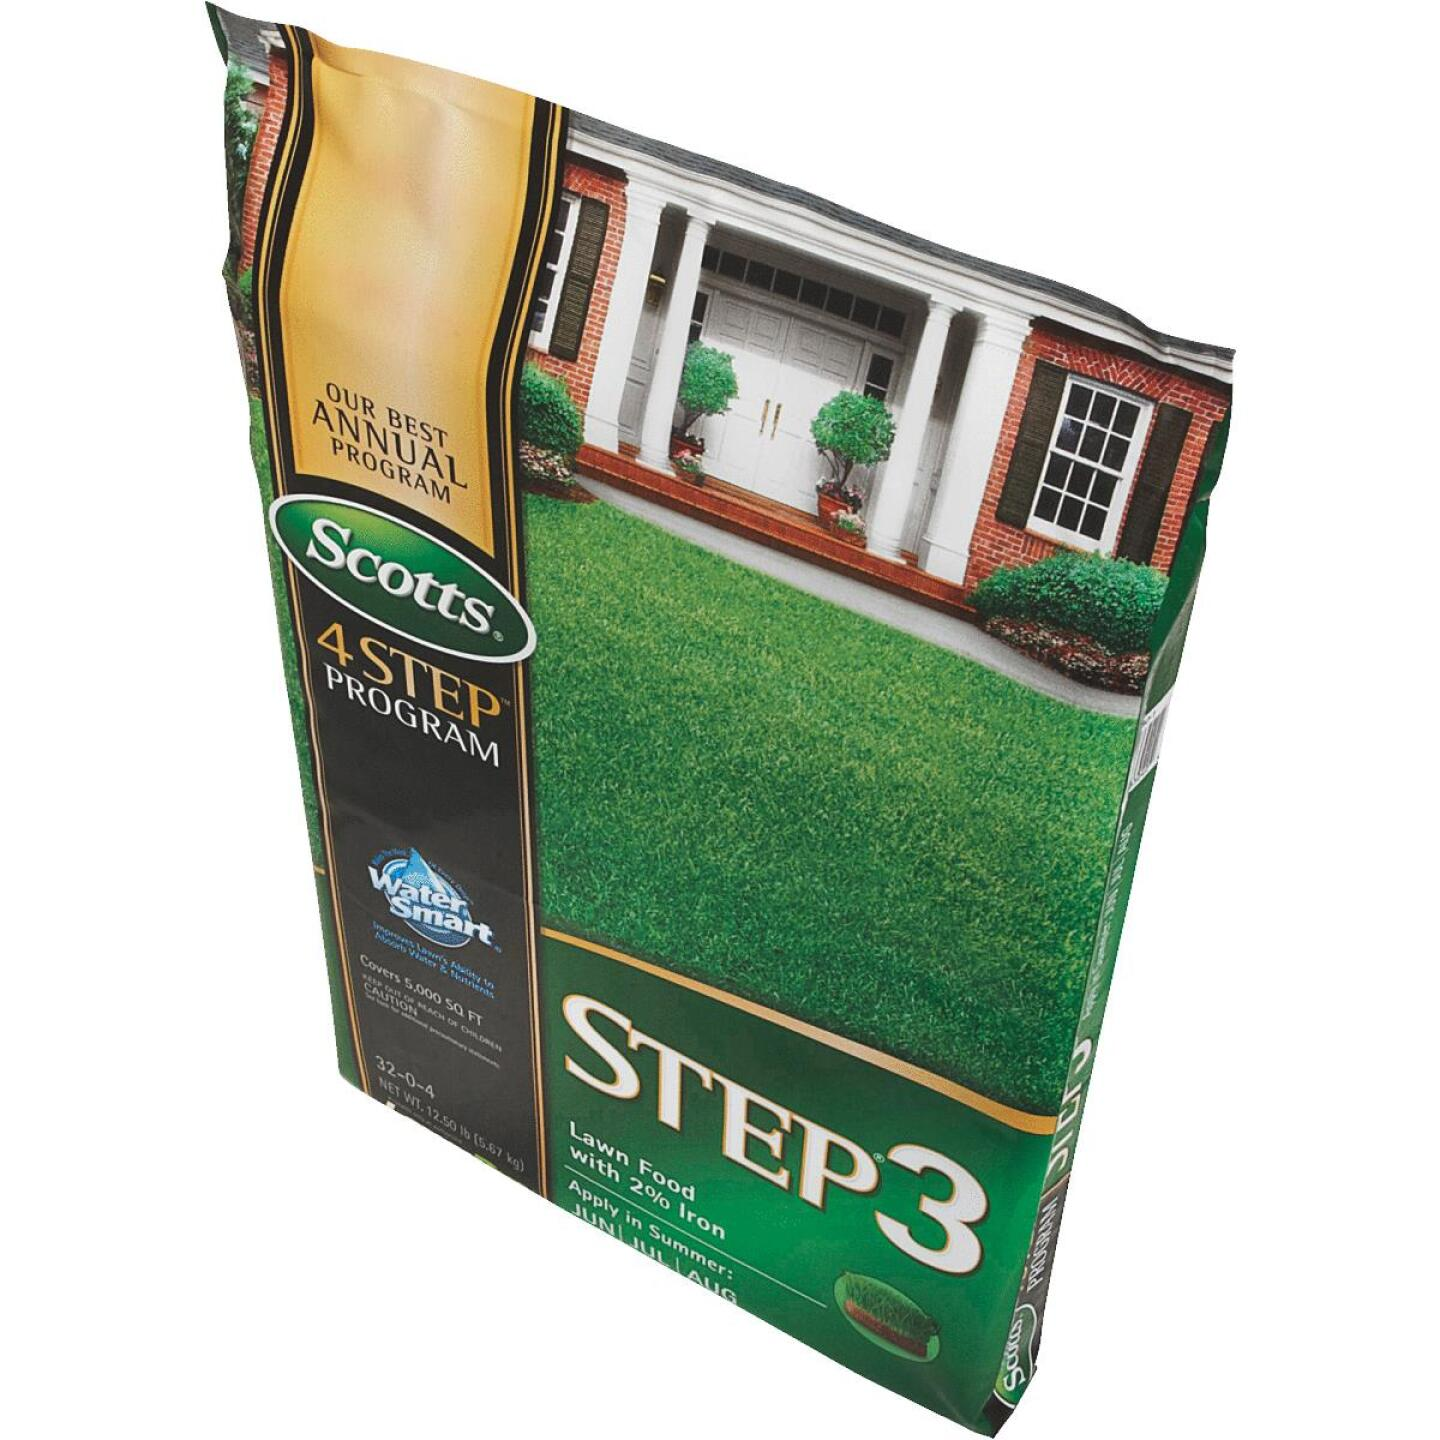 Scotts 4-Step Program Step 3 12.60 Lb. 5000 Sq. Ft. 32-0-4 Lawn Fertilizer with 2% Iron Image 3